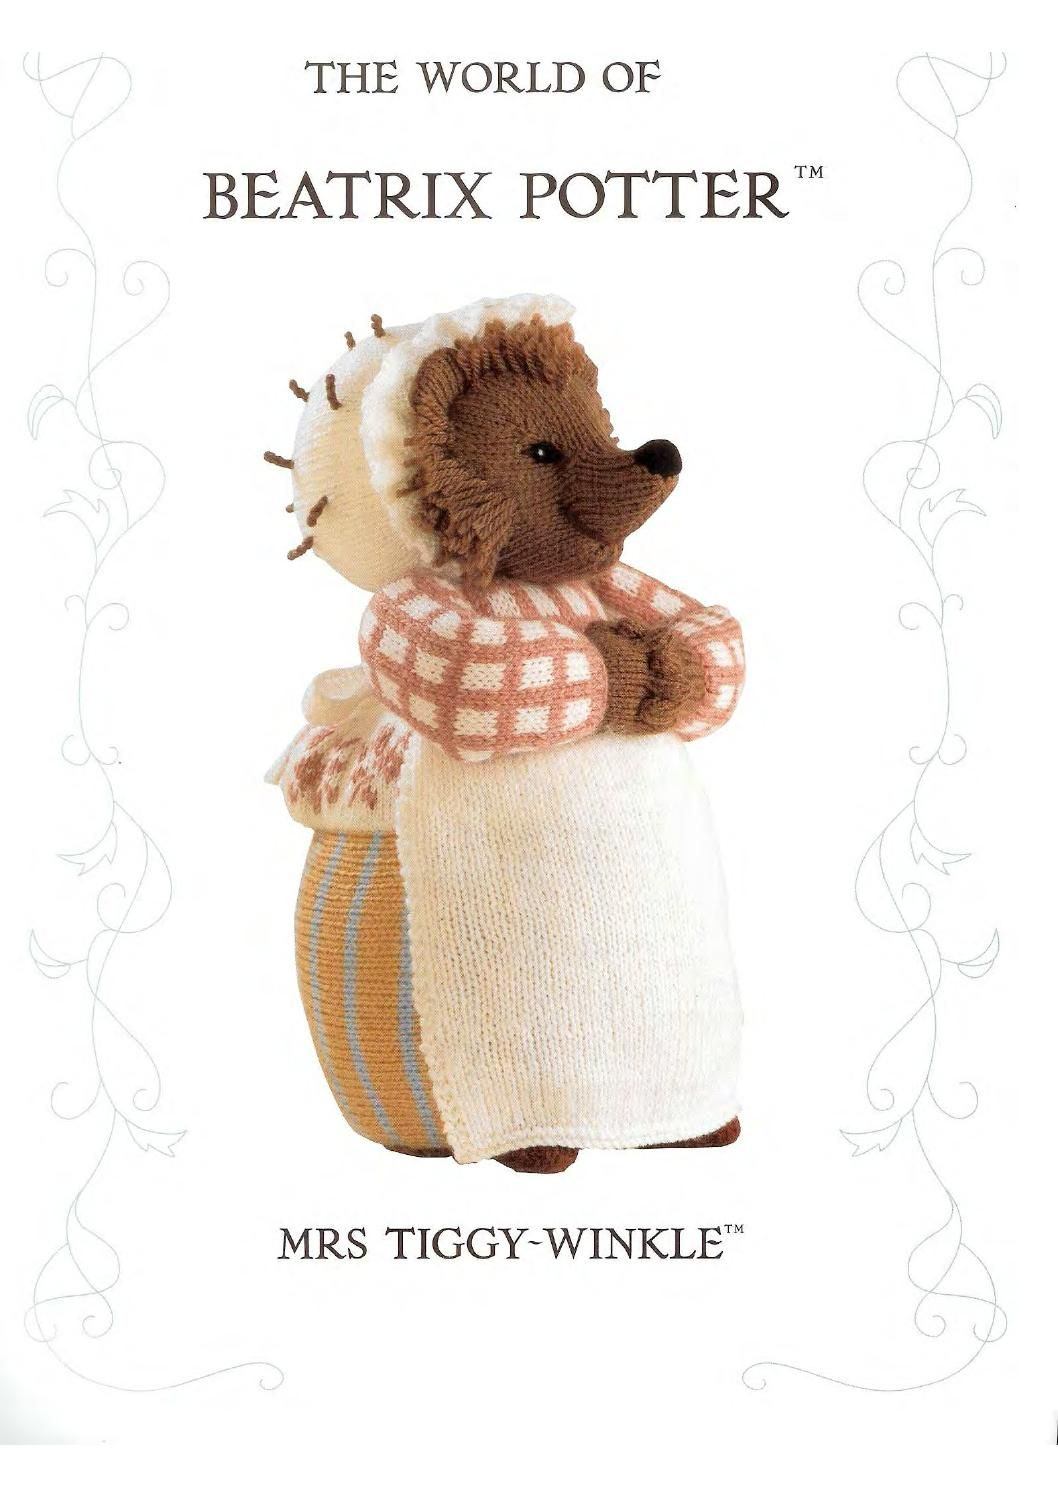 Knit the world of beatrix potter mrs tiggy winkle by FREE Magazine ...